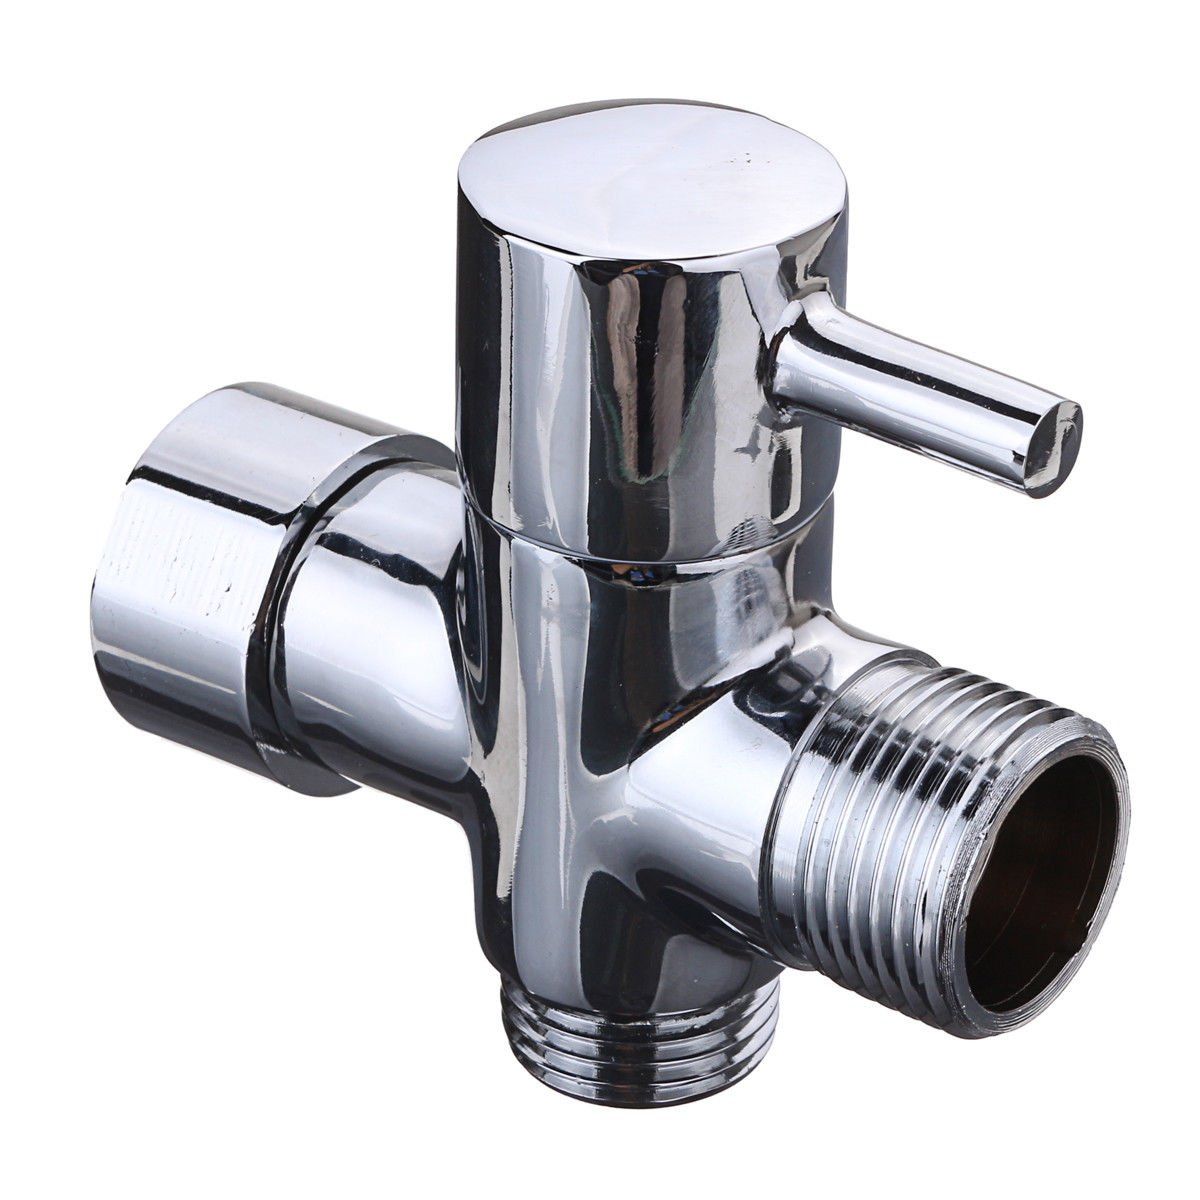 AboutBathroom Chromed Brass G7/8 G1/2 T-adapter for Bidet and Shattaf with Shut off valve